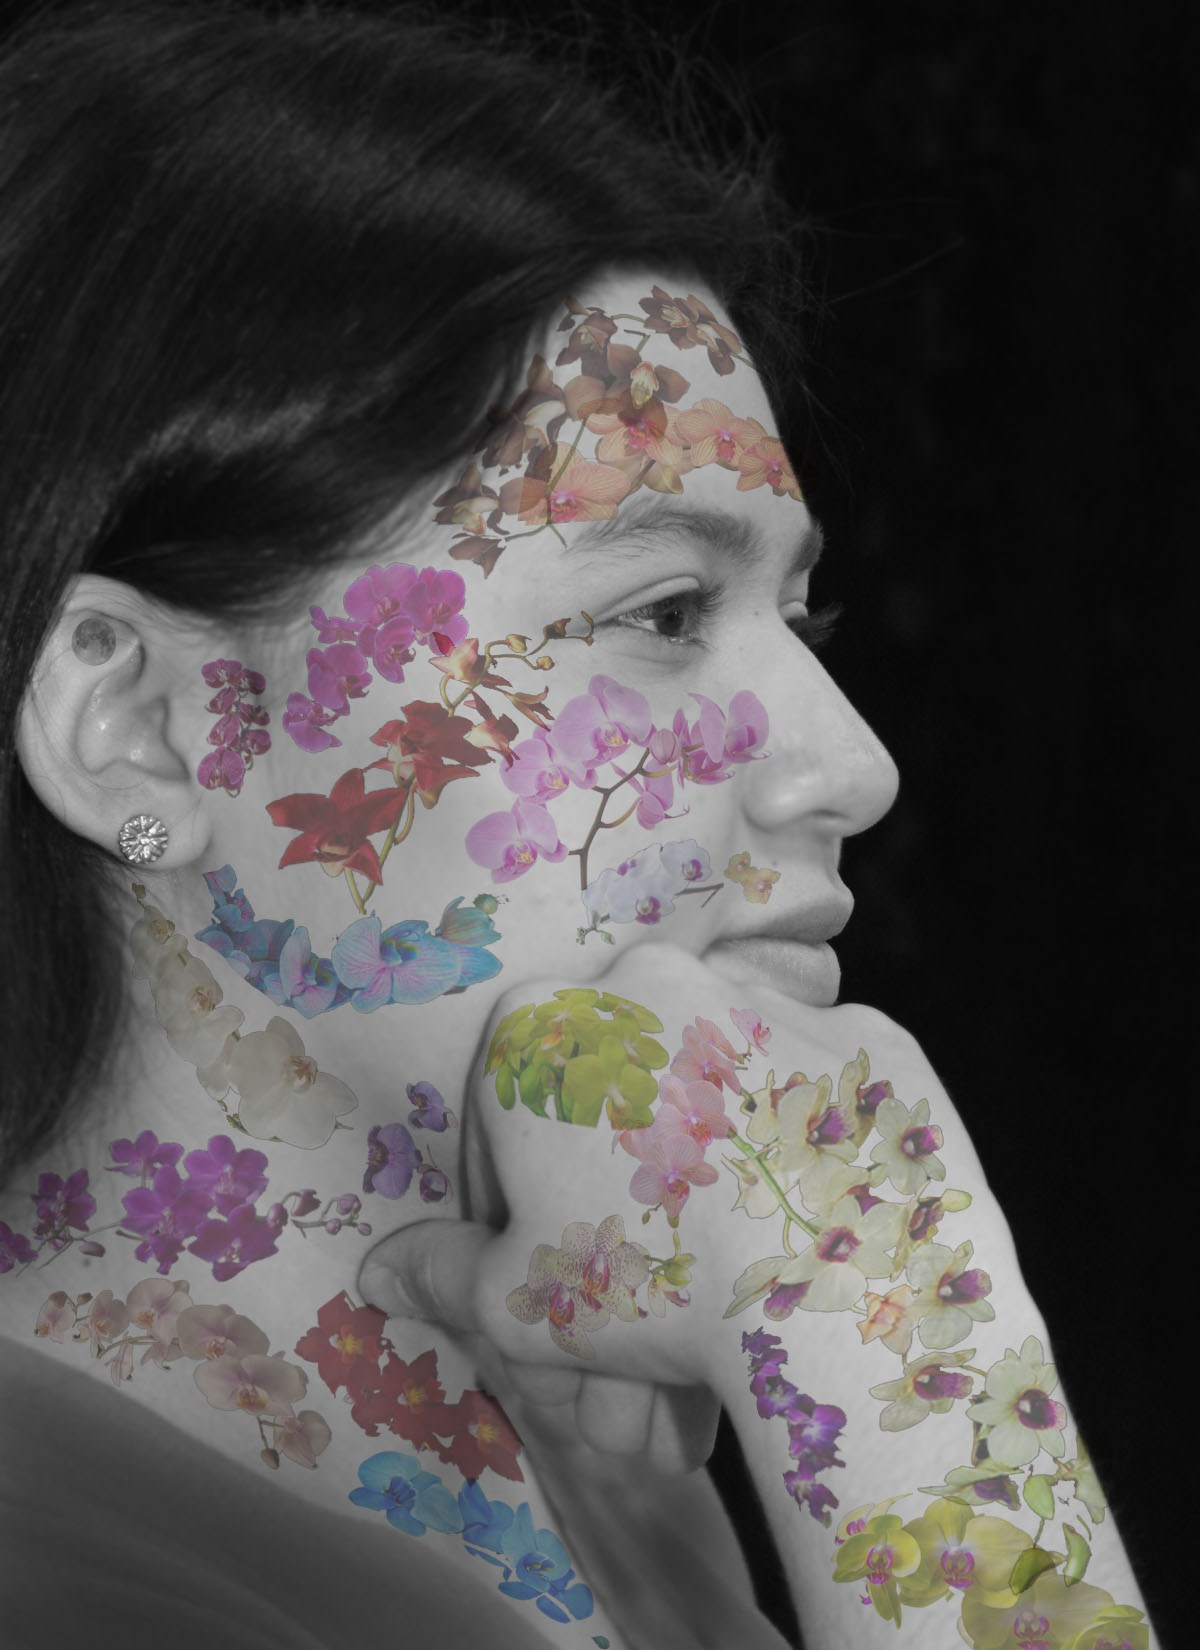 Graphic Arts photo project.